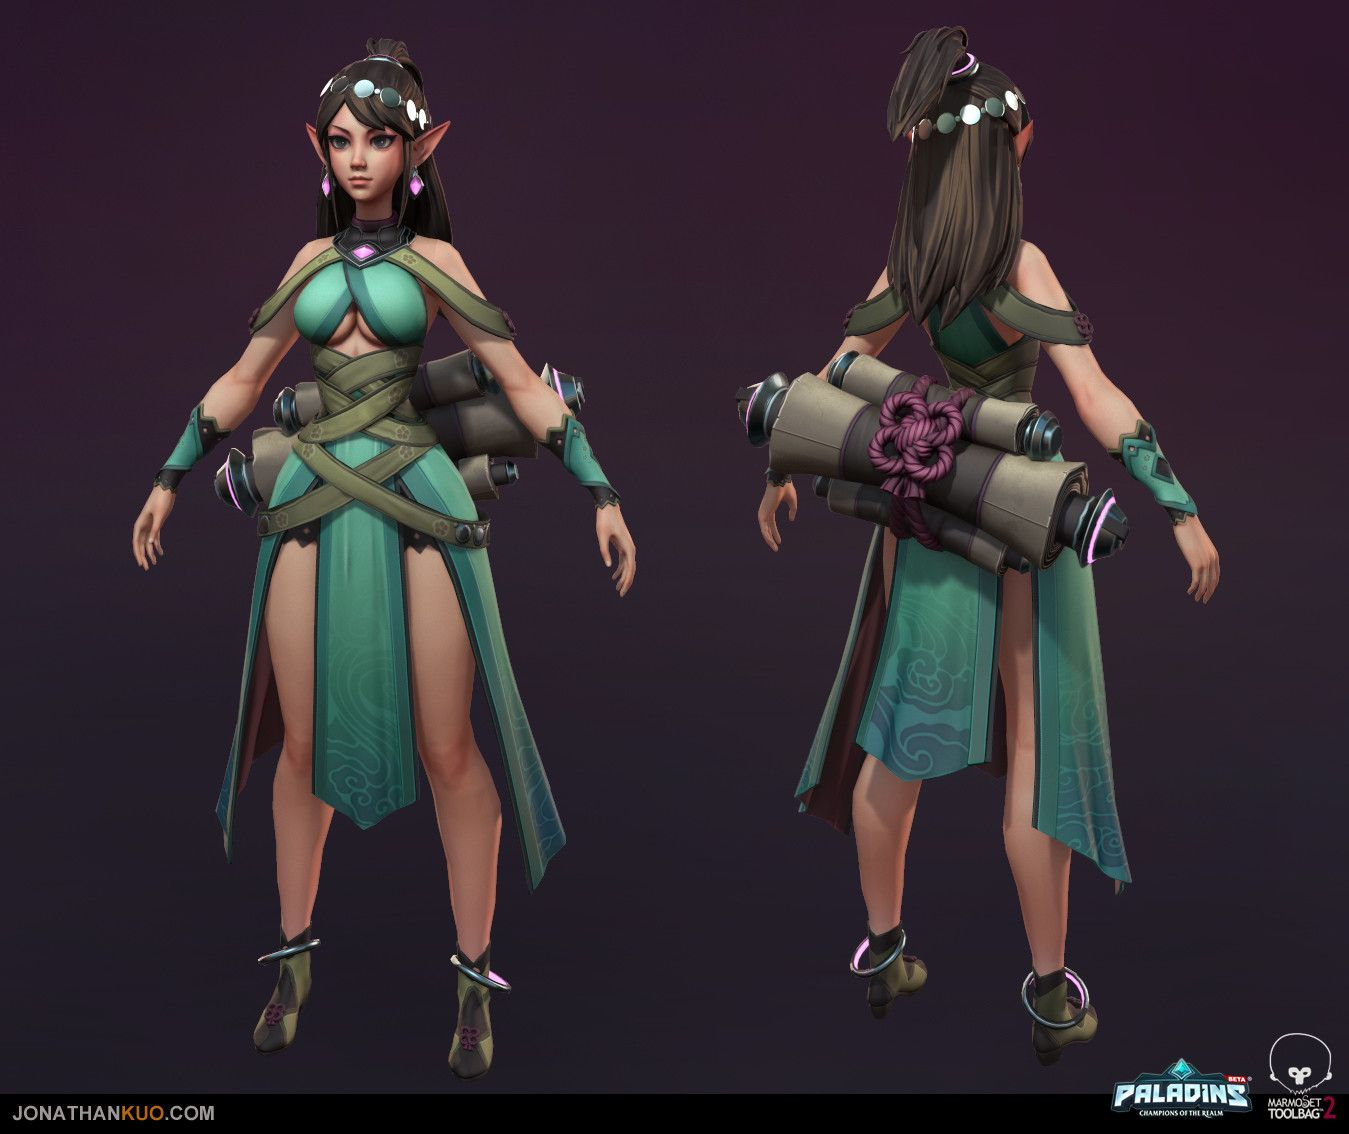 beste schoenen Super korting delicate kleuren Character that I worked on for Paladins: Champions of the ...